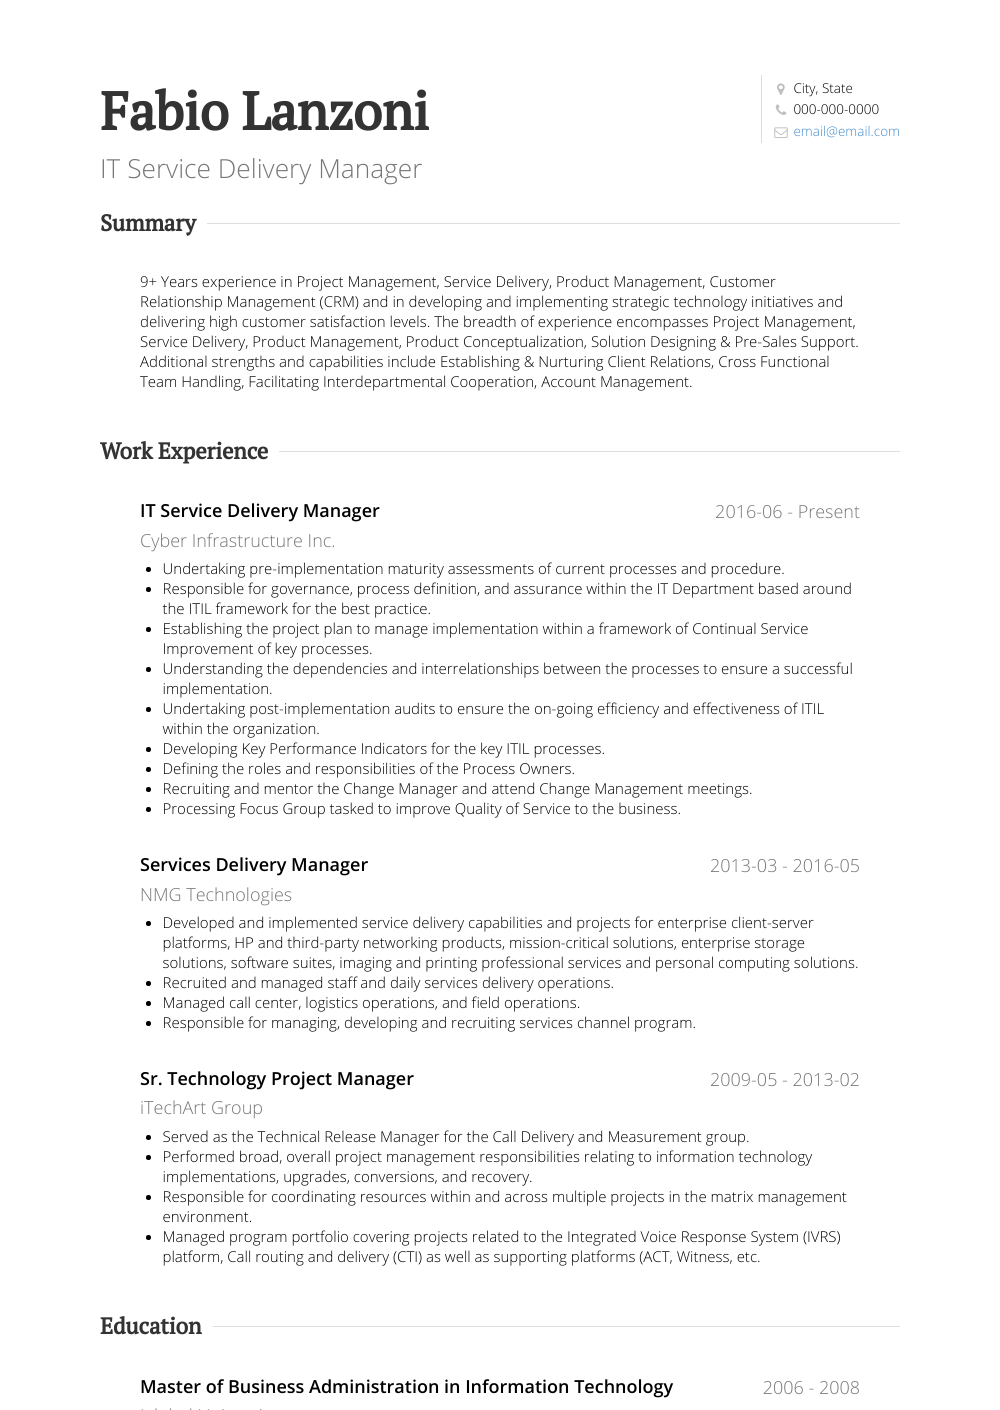 Service Delivery Manager - Resume Samples & Templates | VisualCV